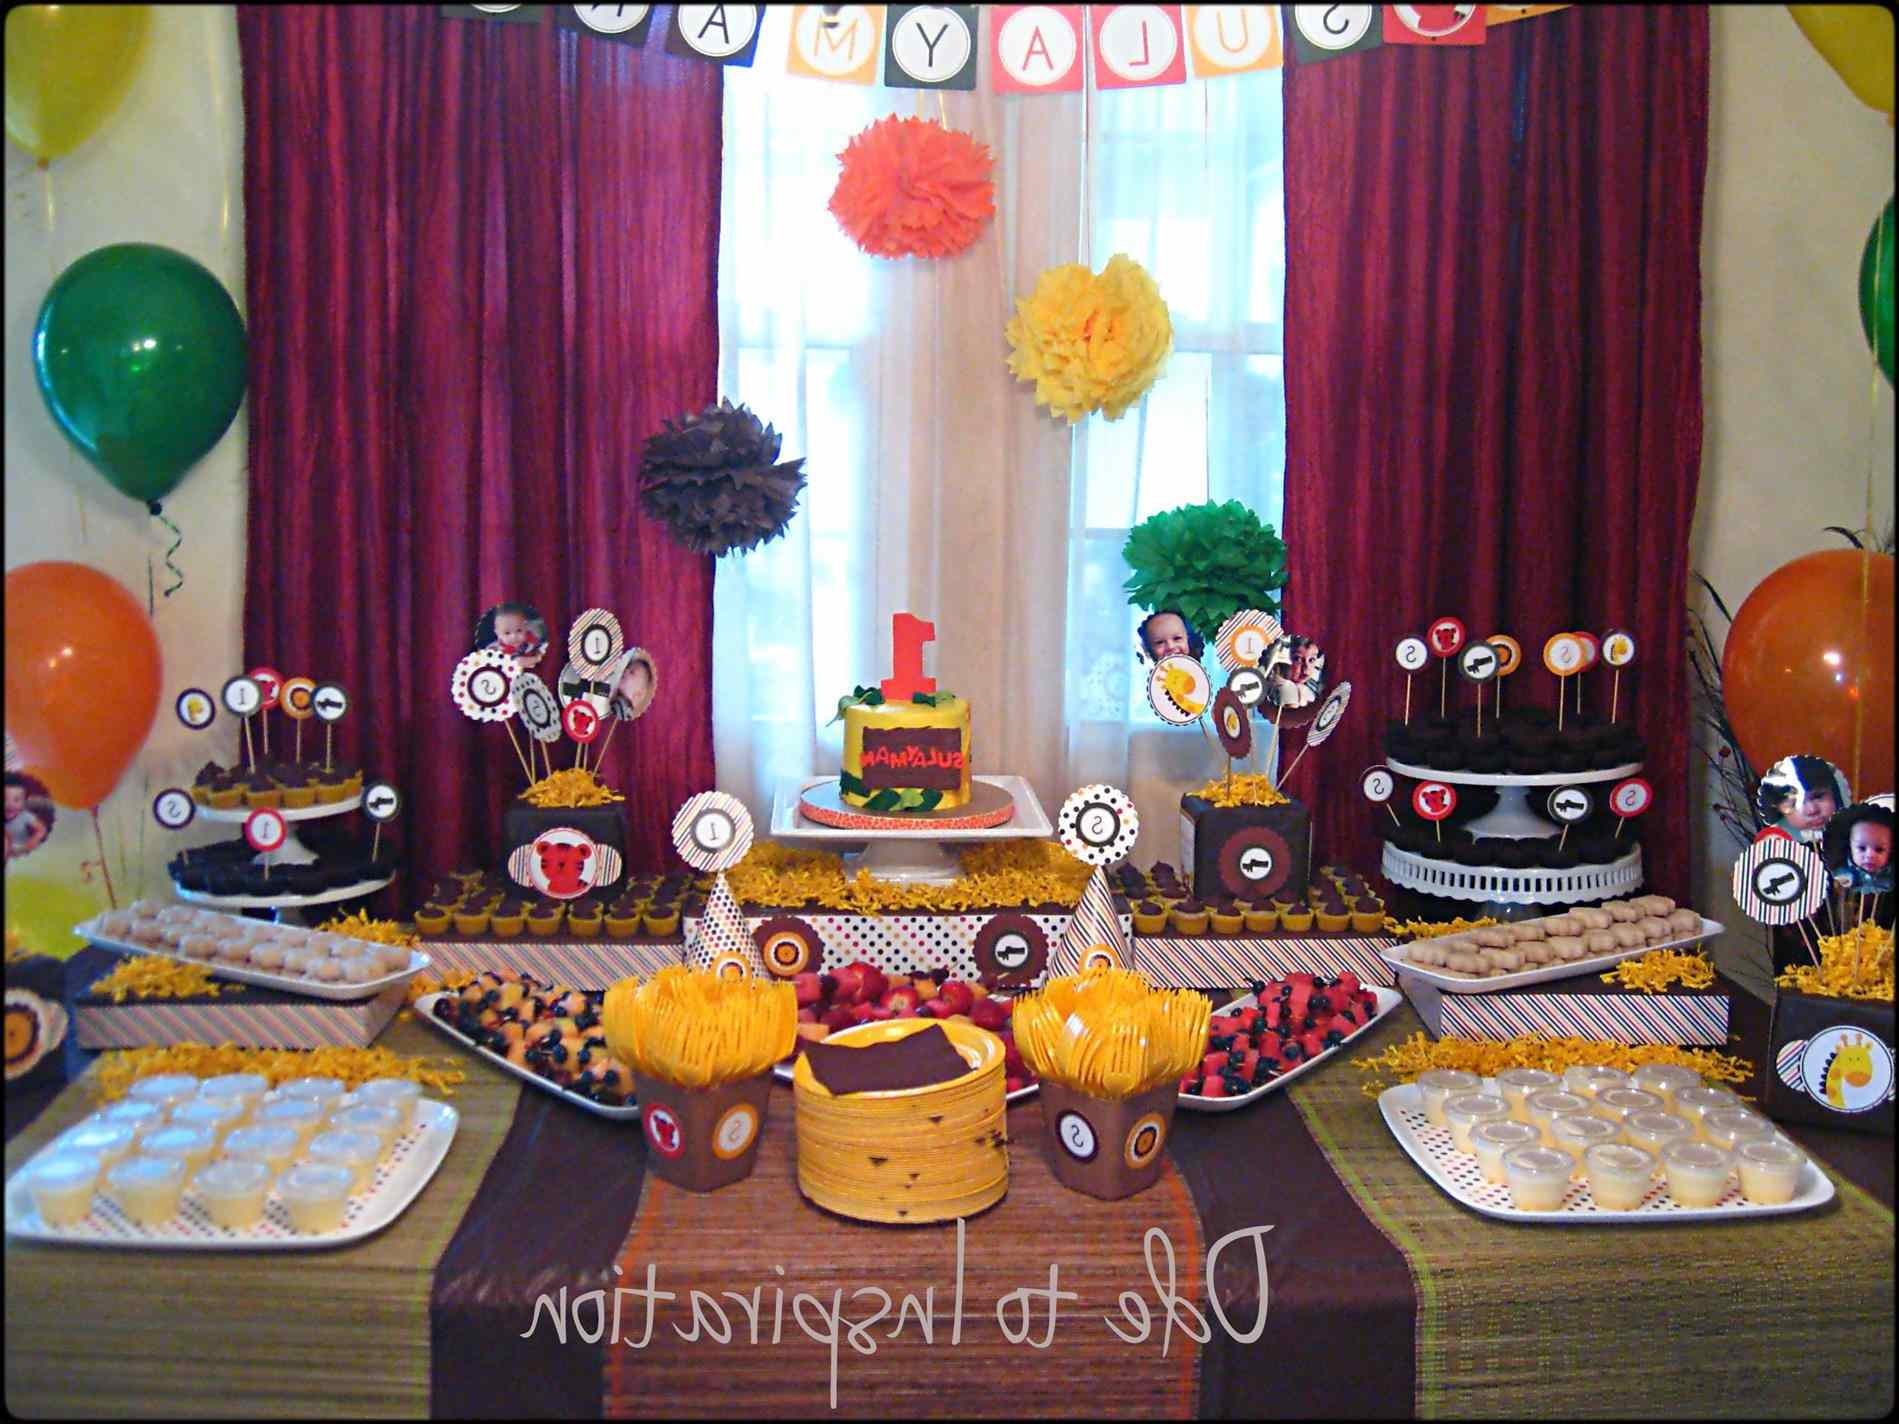 fun birthday party themes ; best-18th-birthday-party-themes-list-hotel-parties-ideas-on-pinterest-fun-in